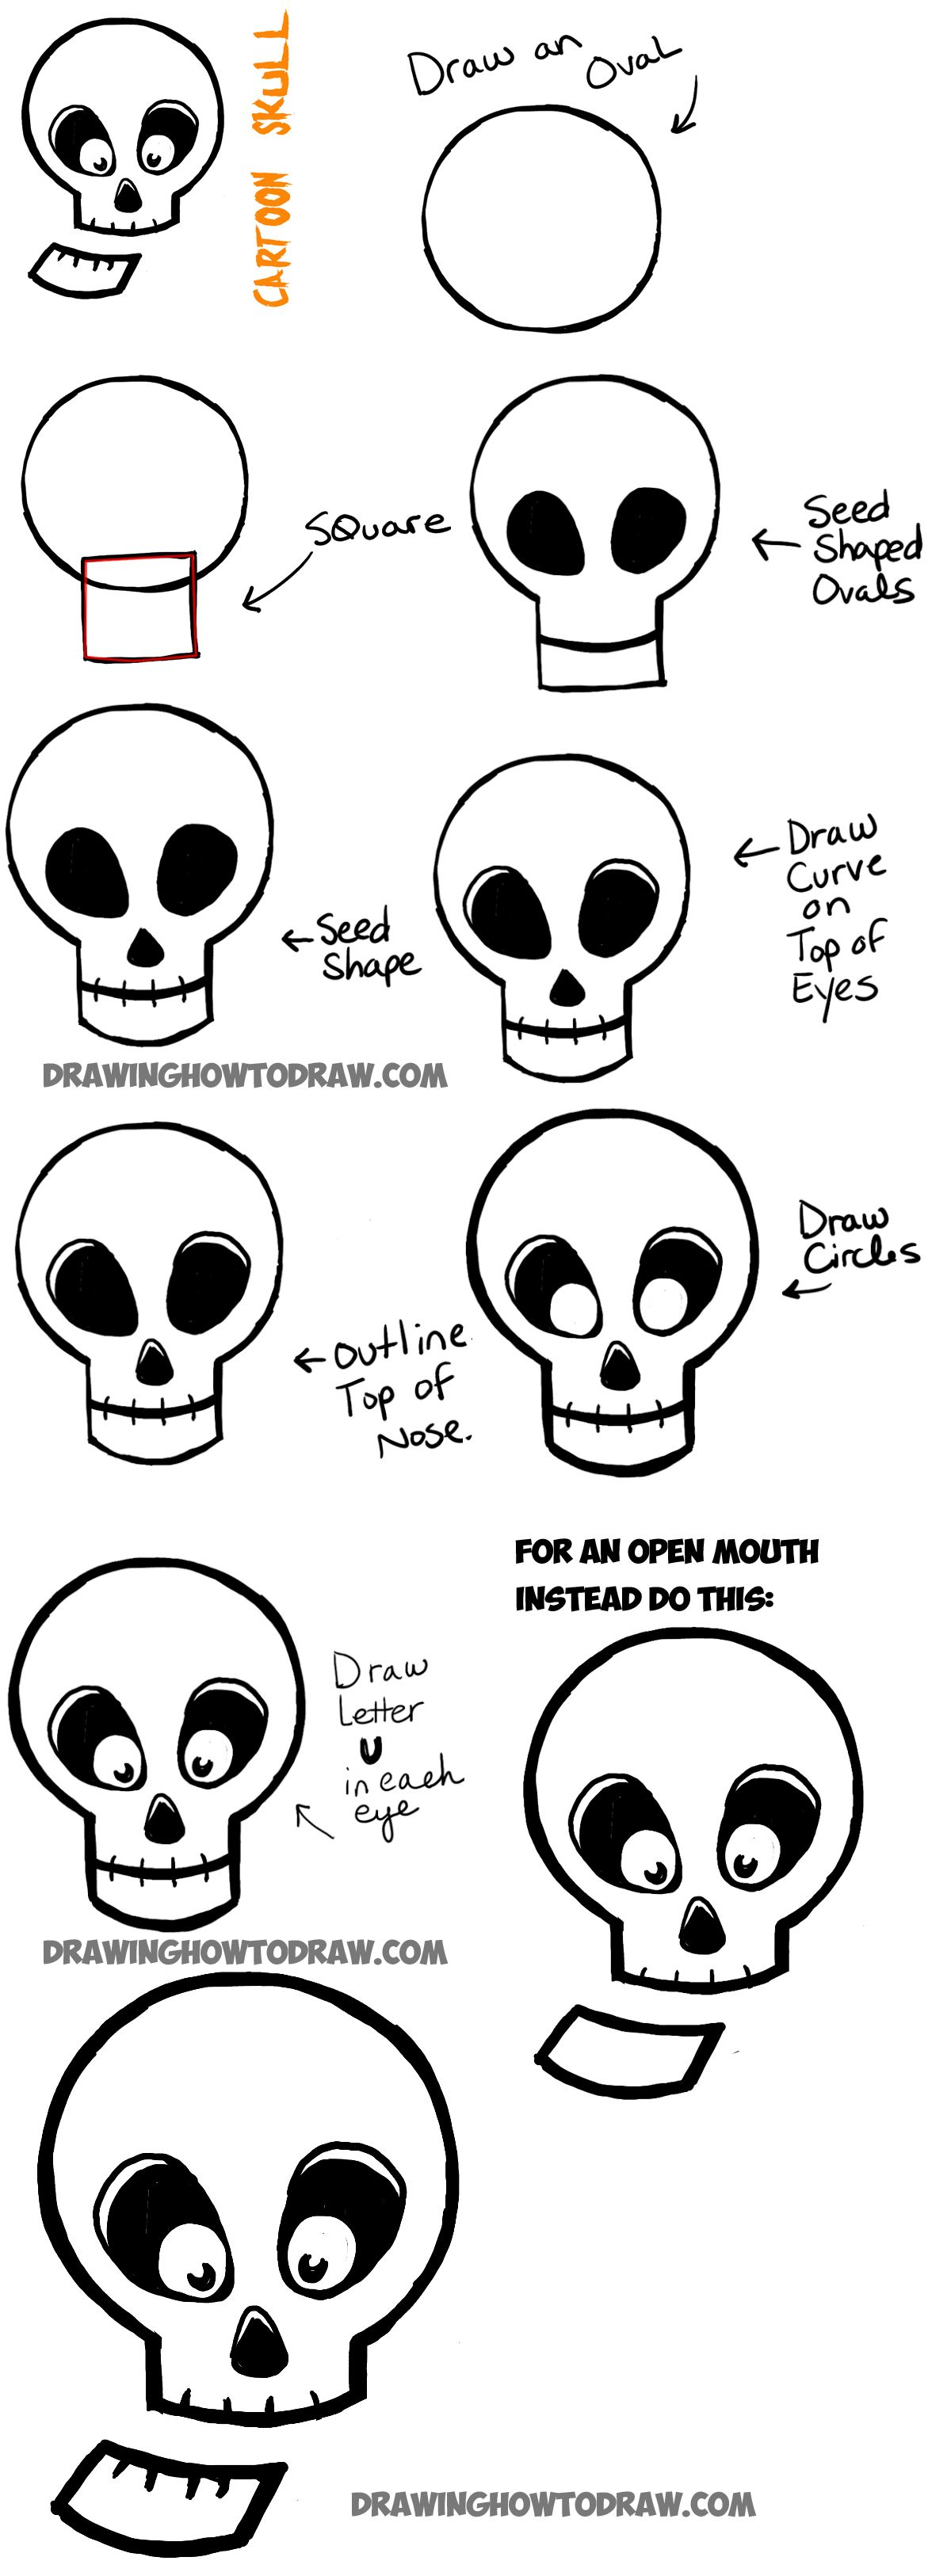 How to Draw Silly Cartoon Skulls for Halloween Easy